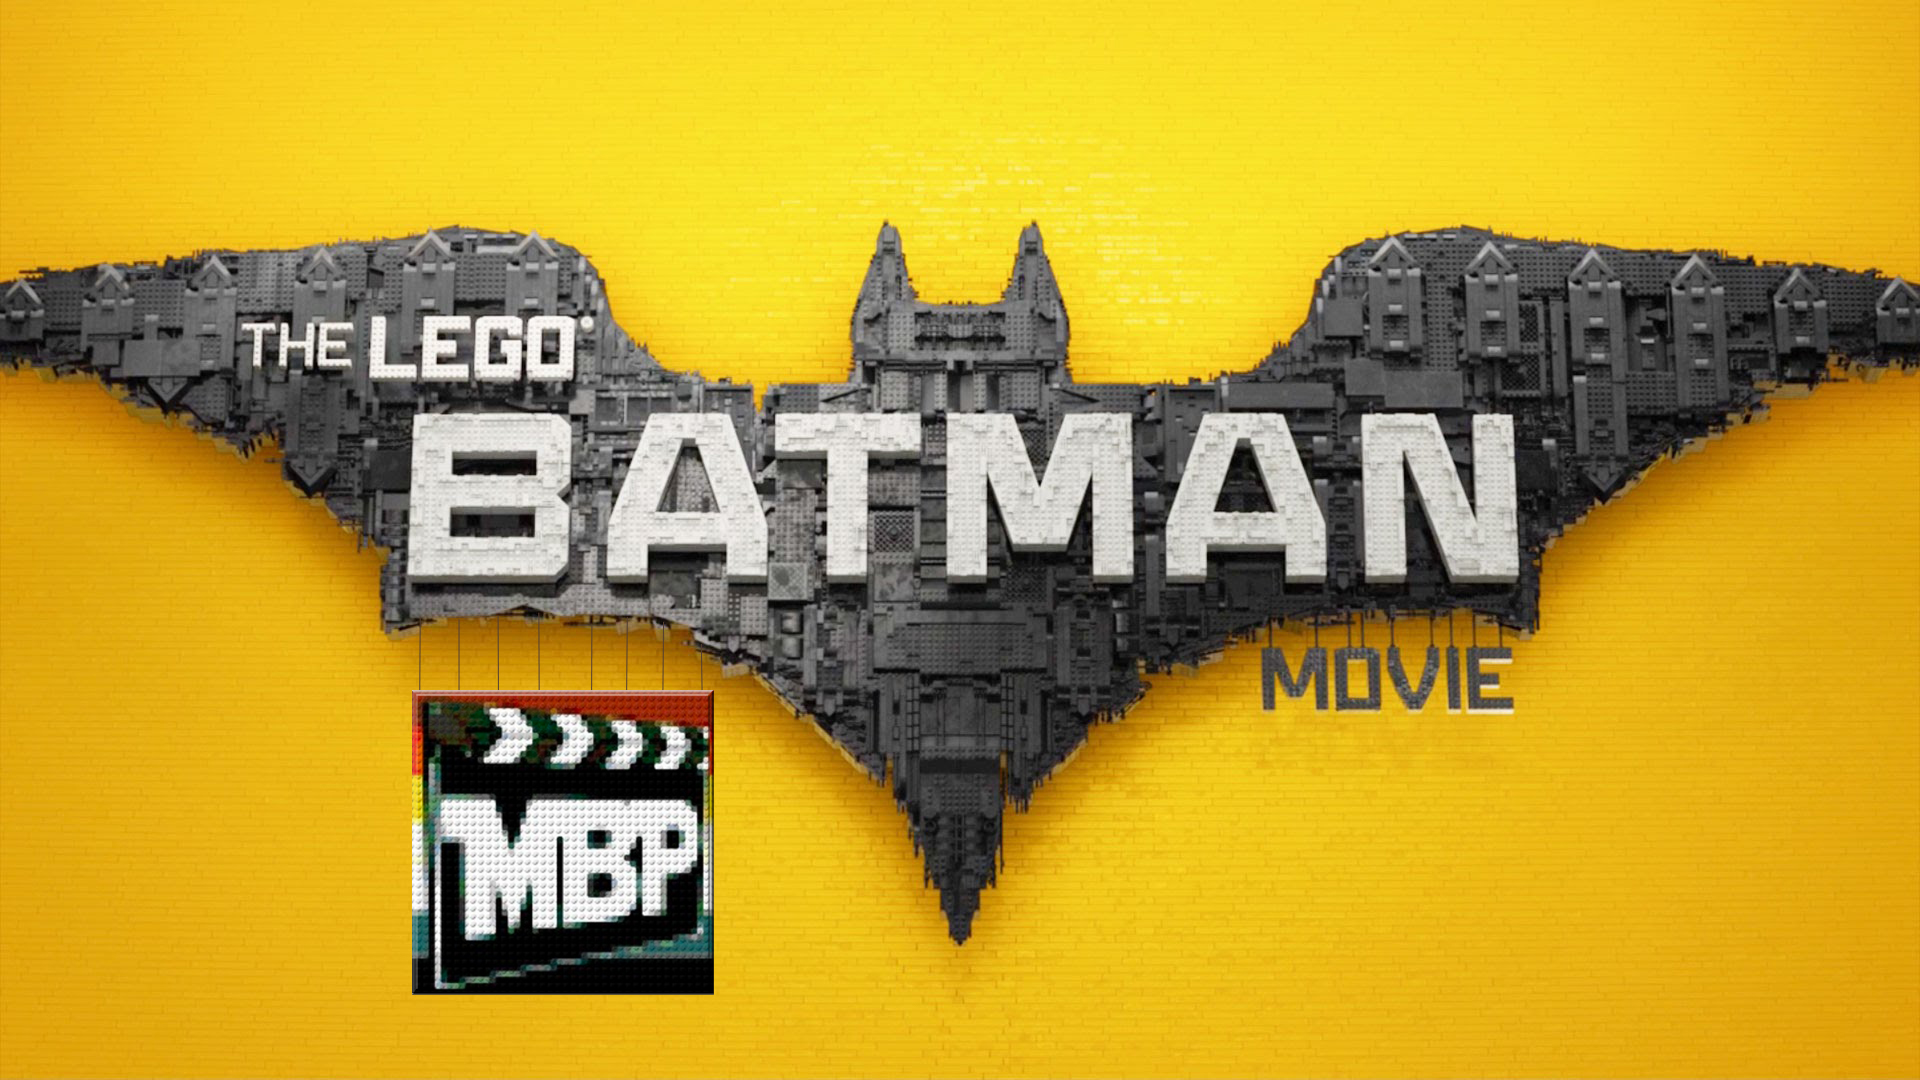 MBP e220 - 'The LEGO Batman Movie' (2/17/17)    Na-Na-Na-Na-Na-Na-Na-Na BATMAN! This week, we're talking about the frenetic animation of 'The LEGO Batman Movie.' Is everything awesome with the latest LEGO movie? Or does this film fall apart? Click through to find out!